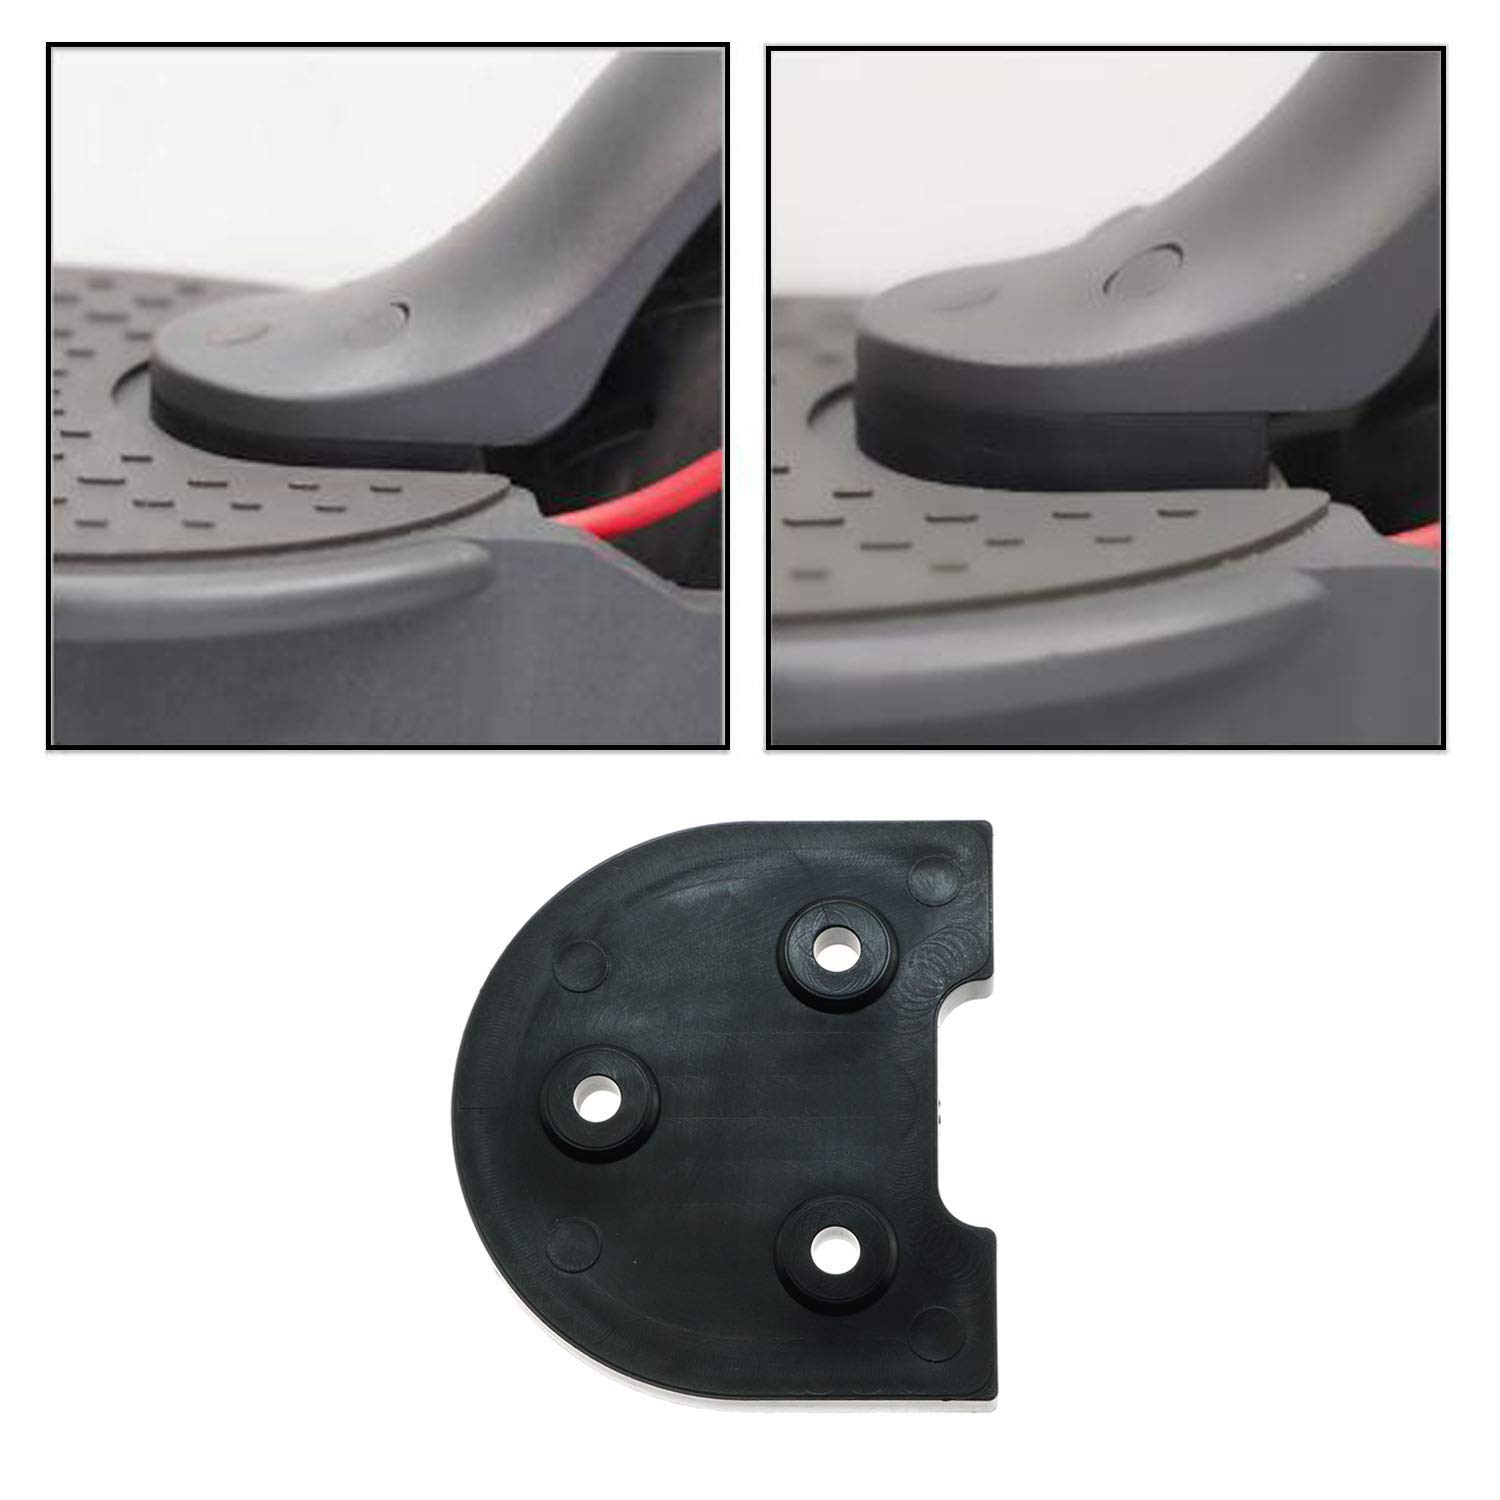 Maxmoral 1Set Scooter Accessories Upgrade Wheel Rear Fender Bracket Gasket for Xiaomi M365 Electric Scooter Black